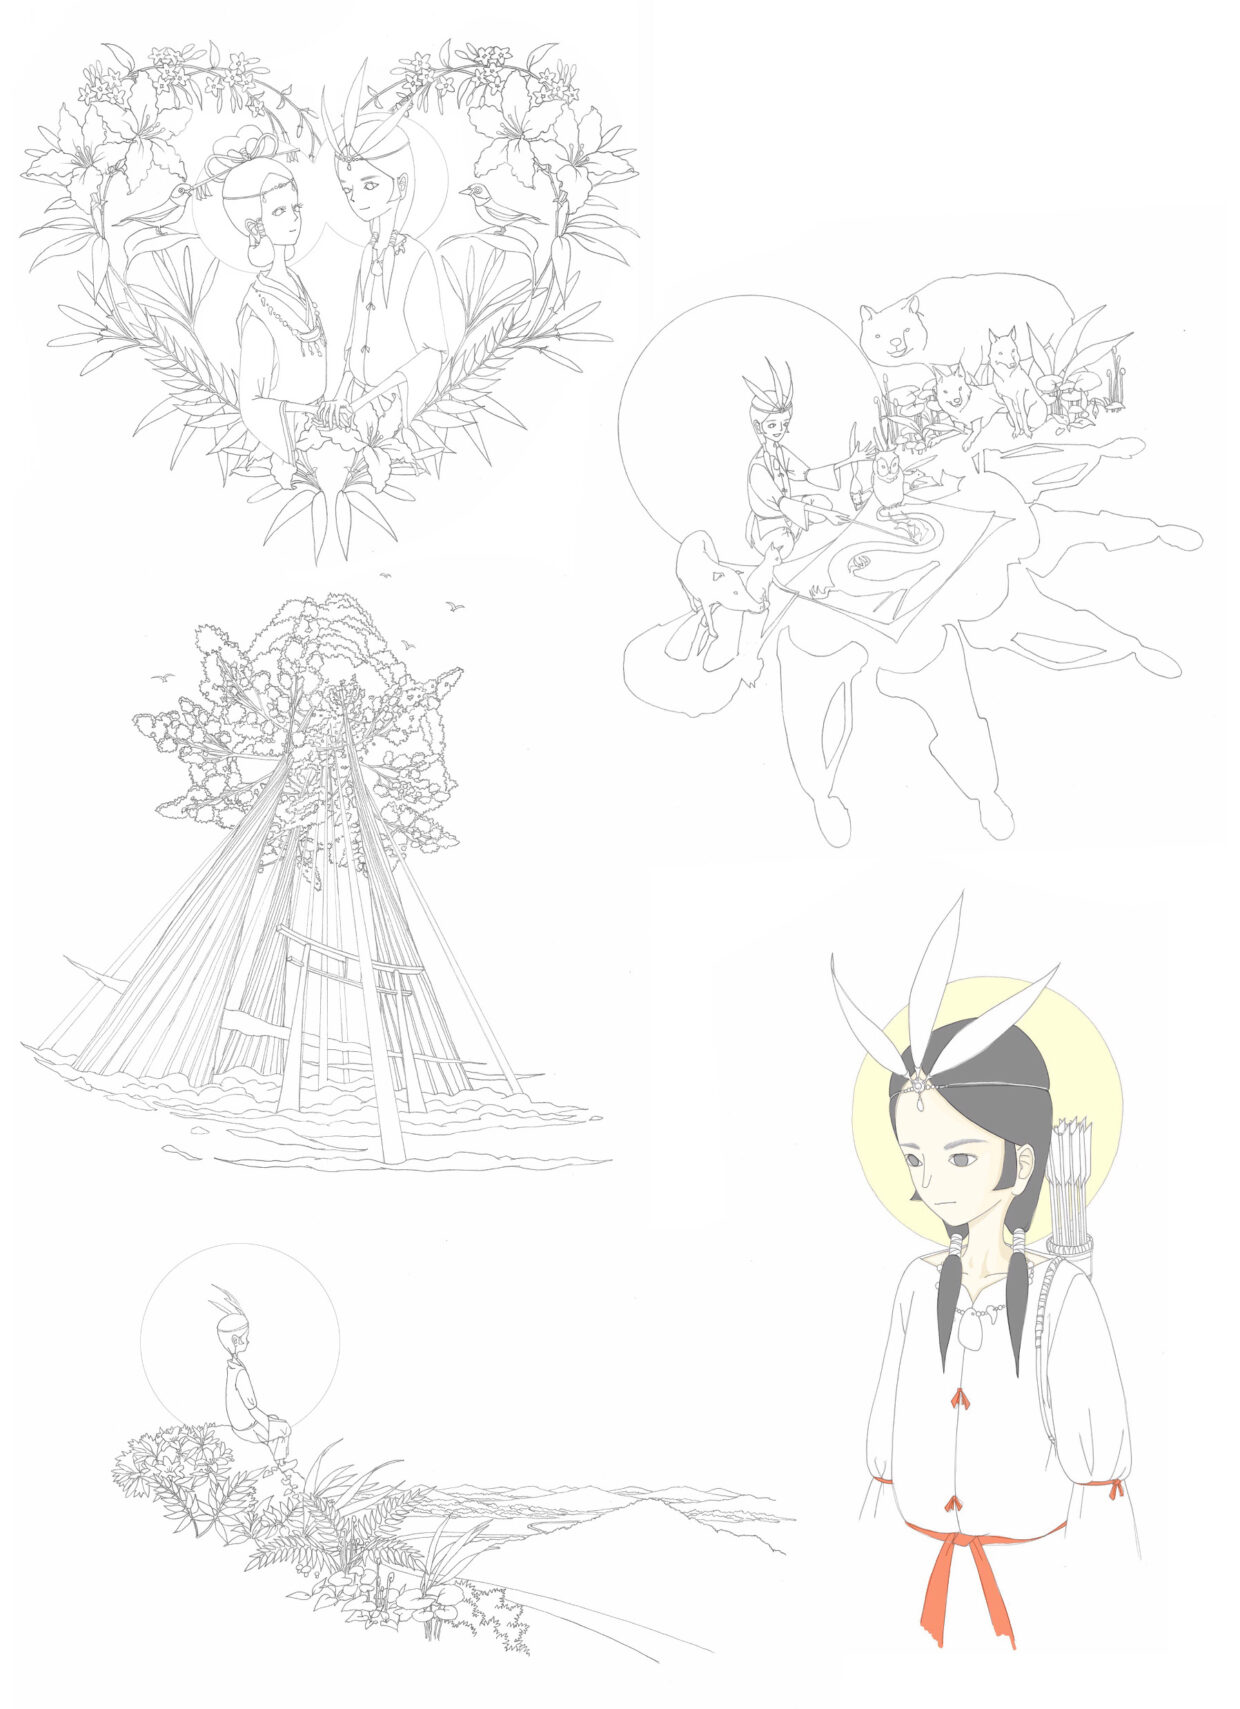 Tradition images sketchs 01